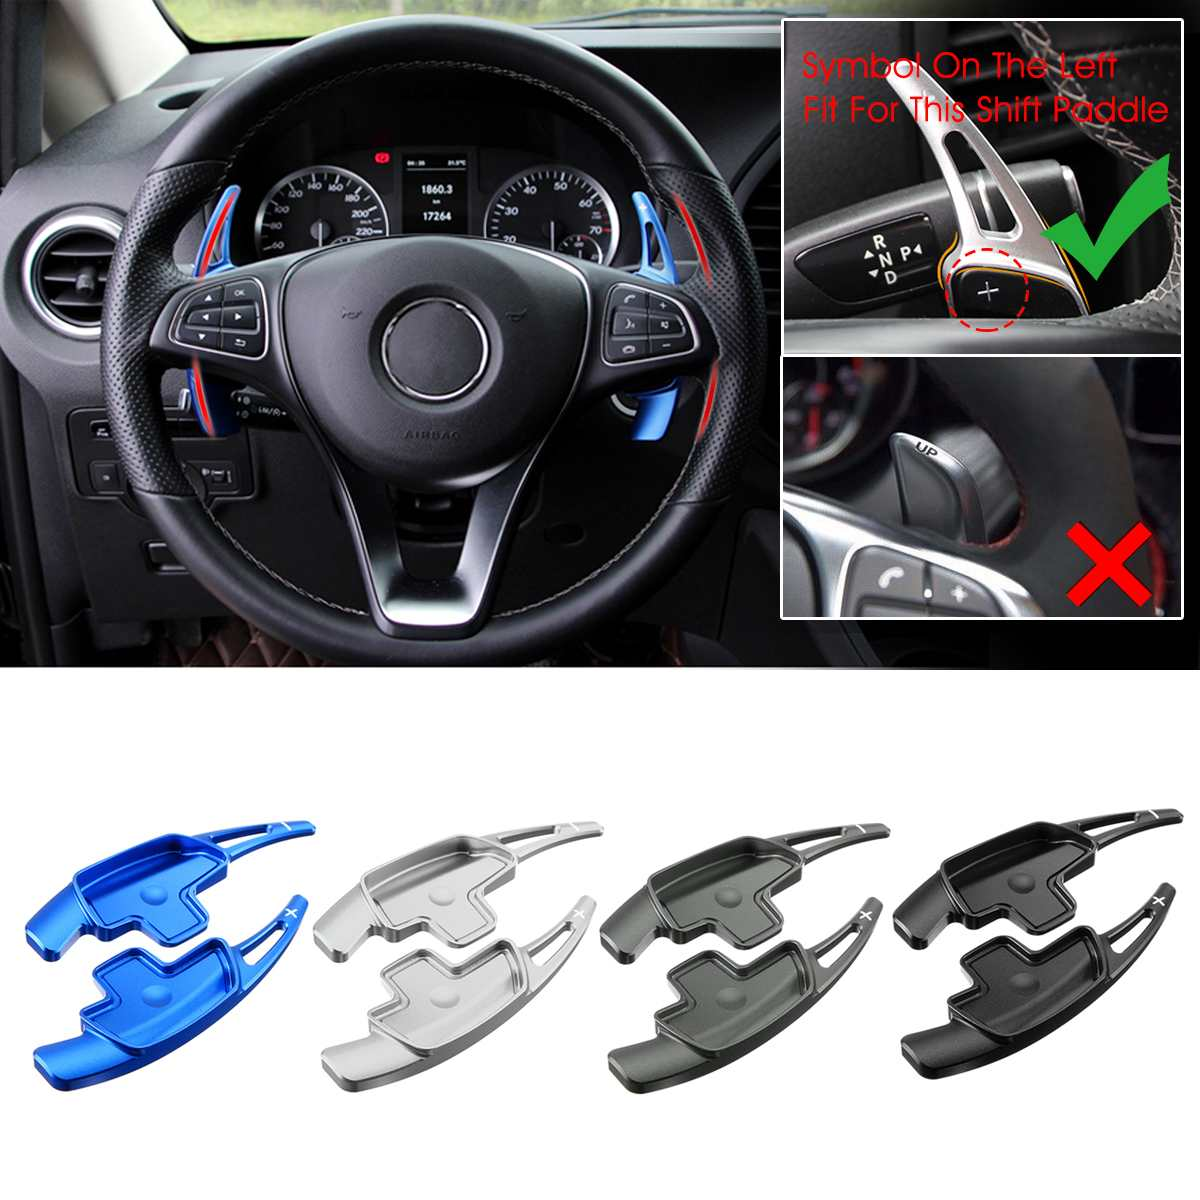 Alloy Steering Wheel DSG Paddle Extension Shifters Cover For Mercedes S350 S400